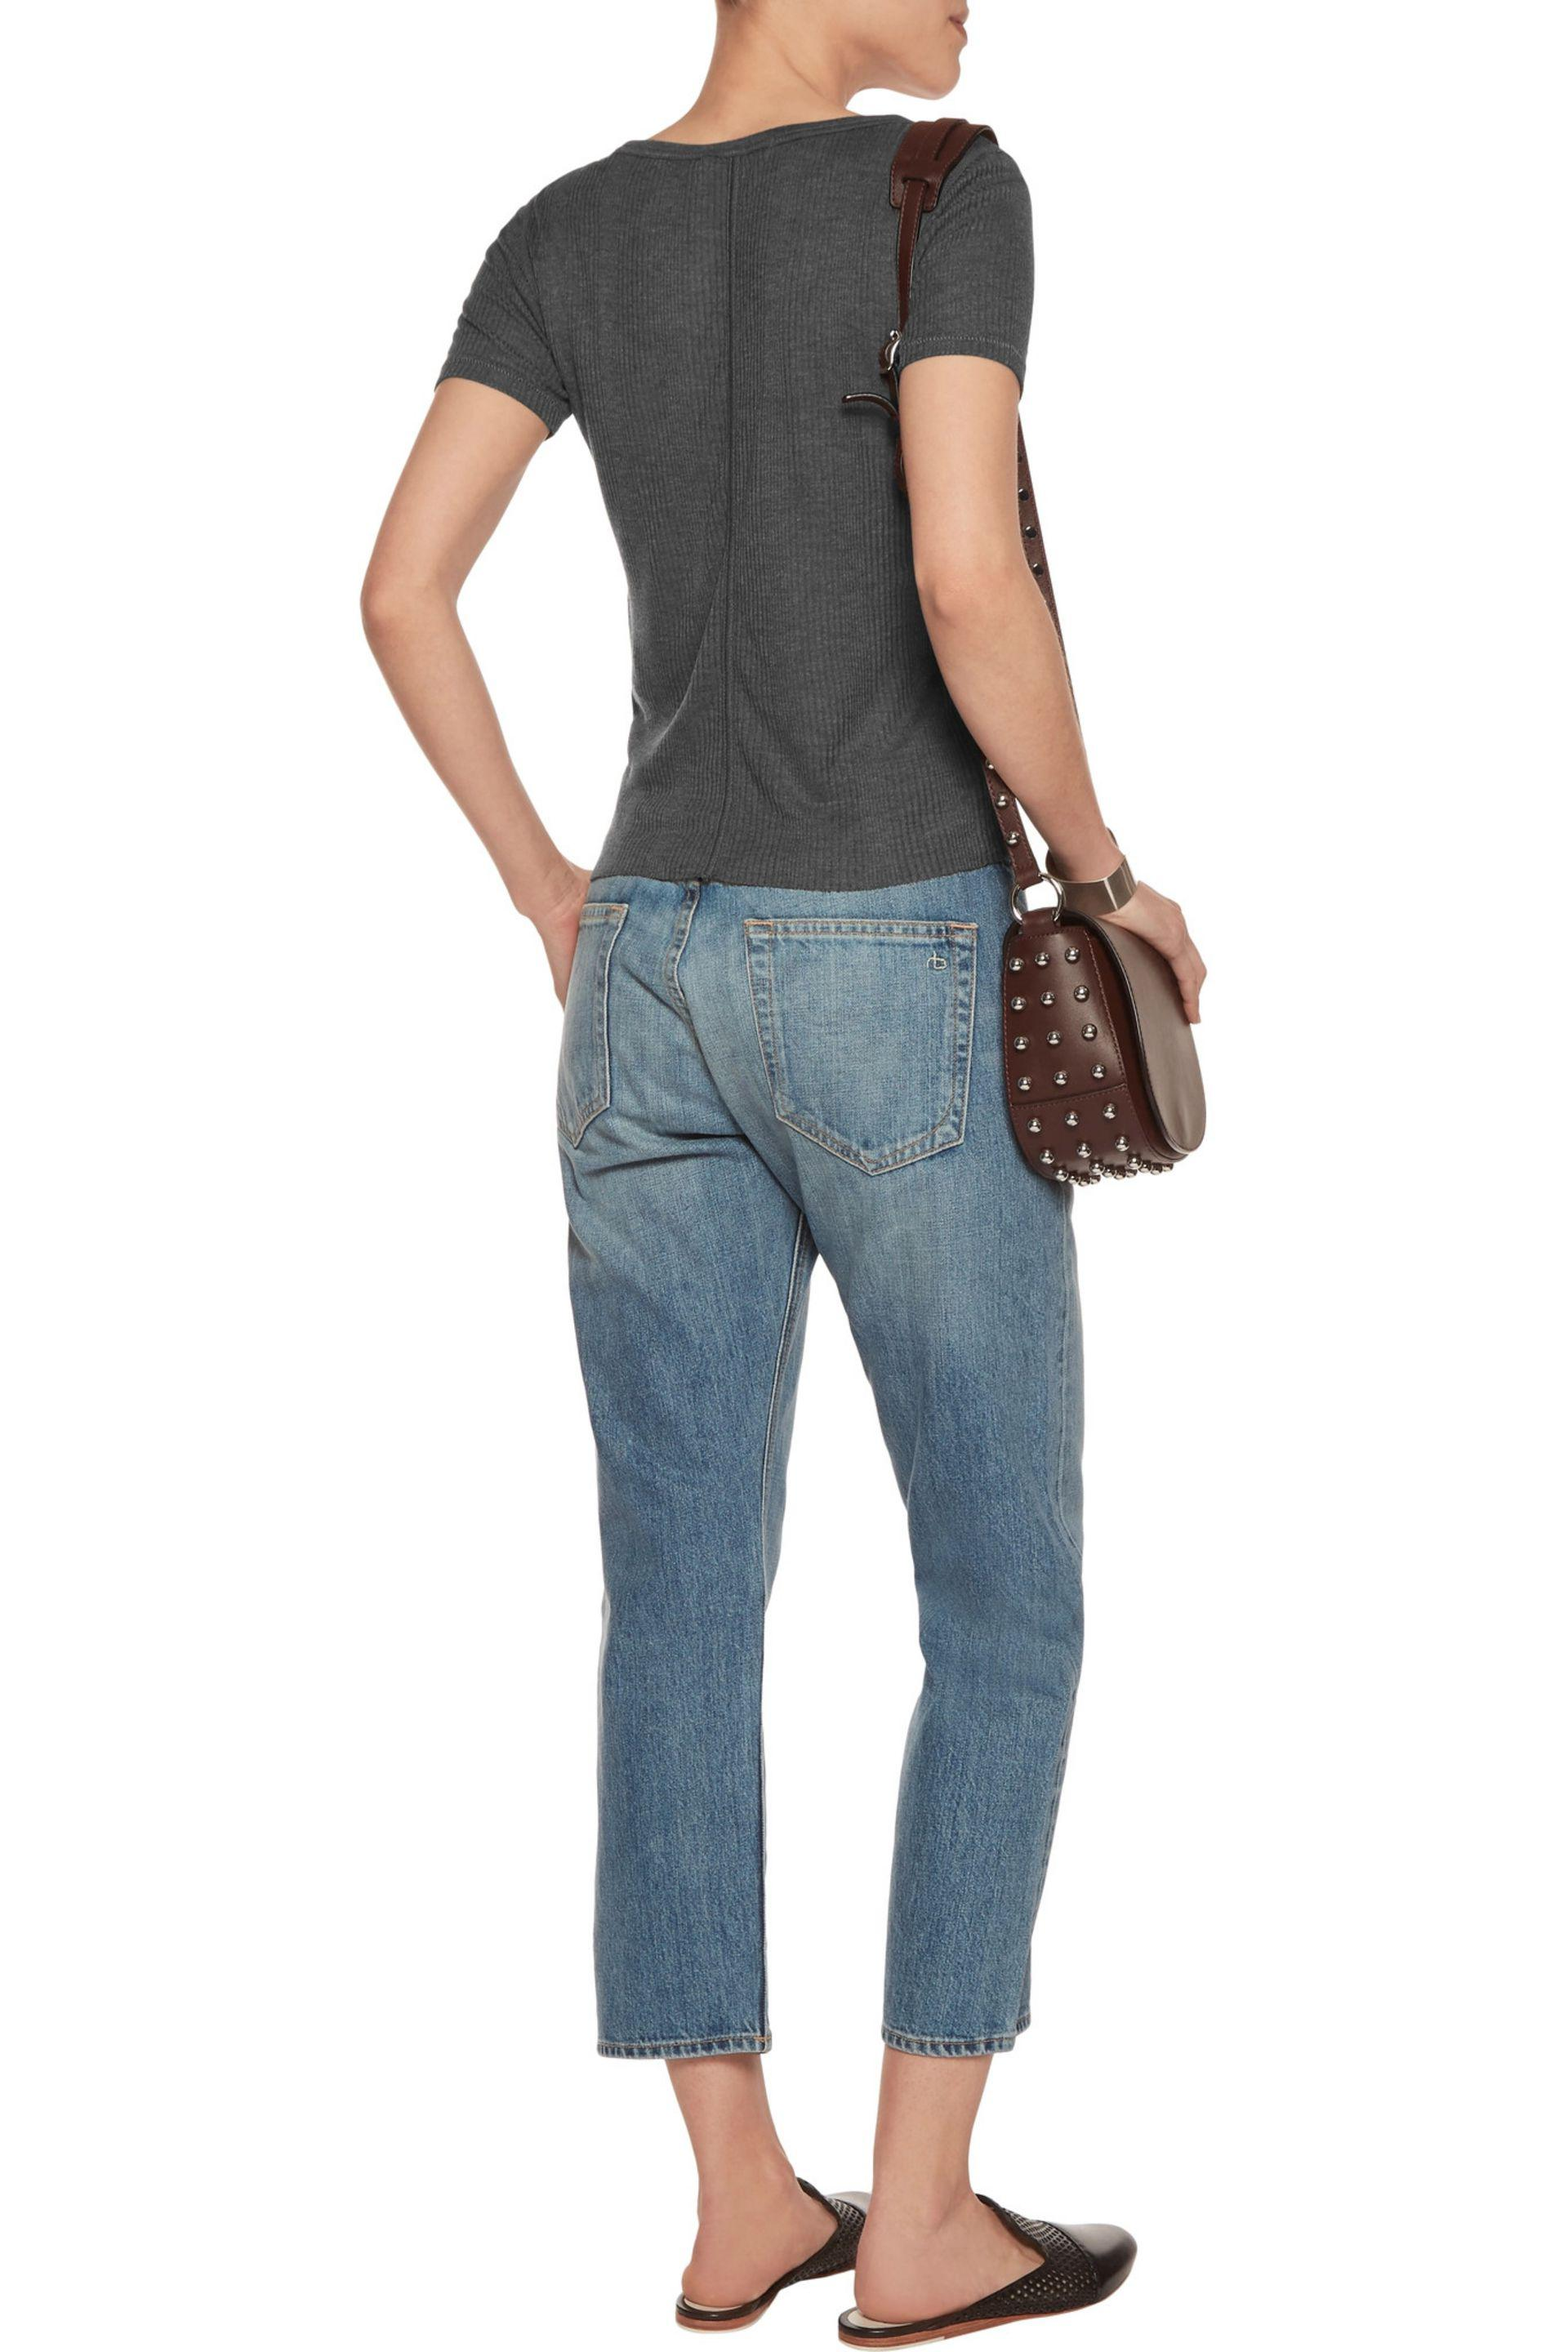 Rag & Bone Denim Marilyn Boyfriend Jeans in Light Blue (Blue)